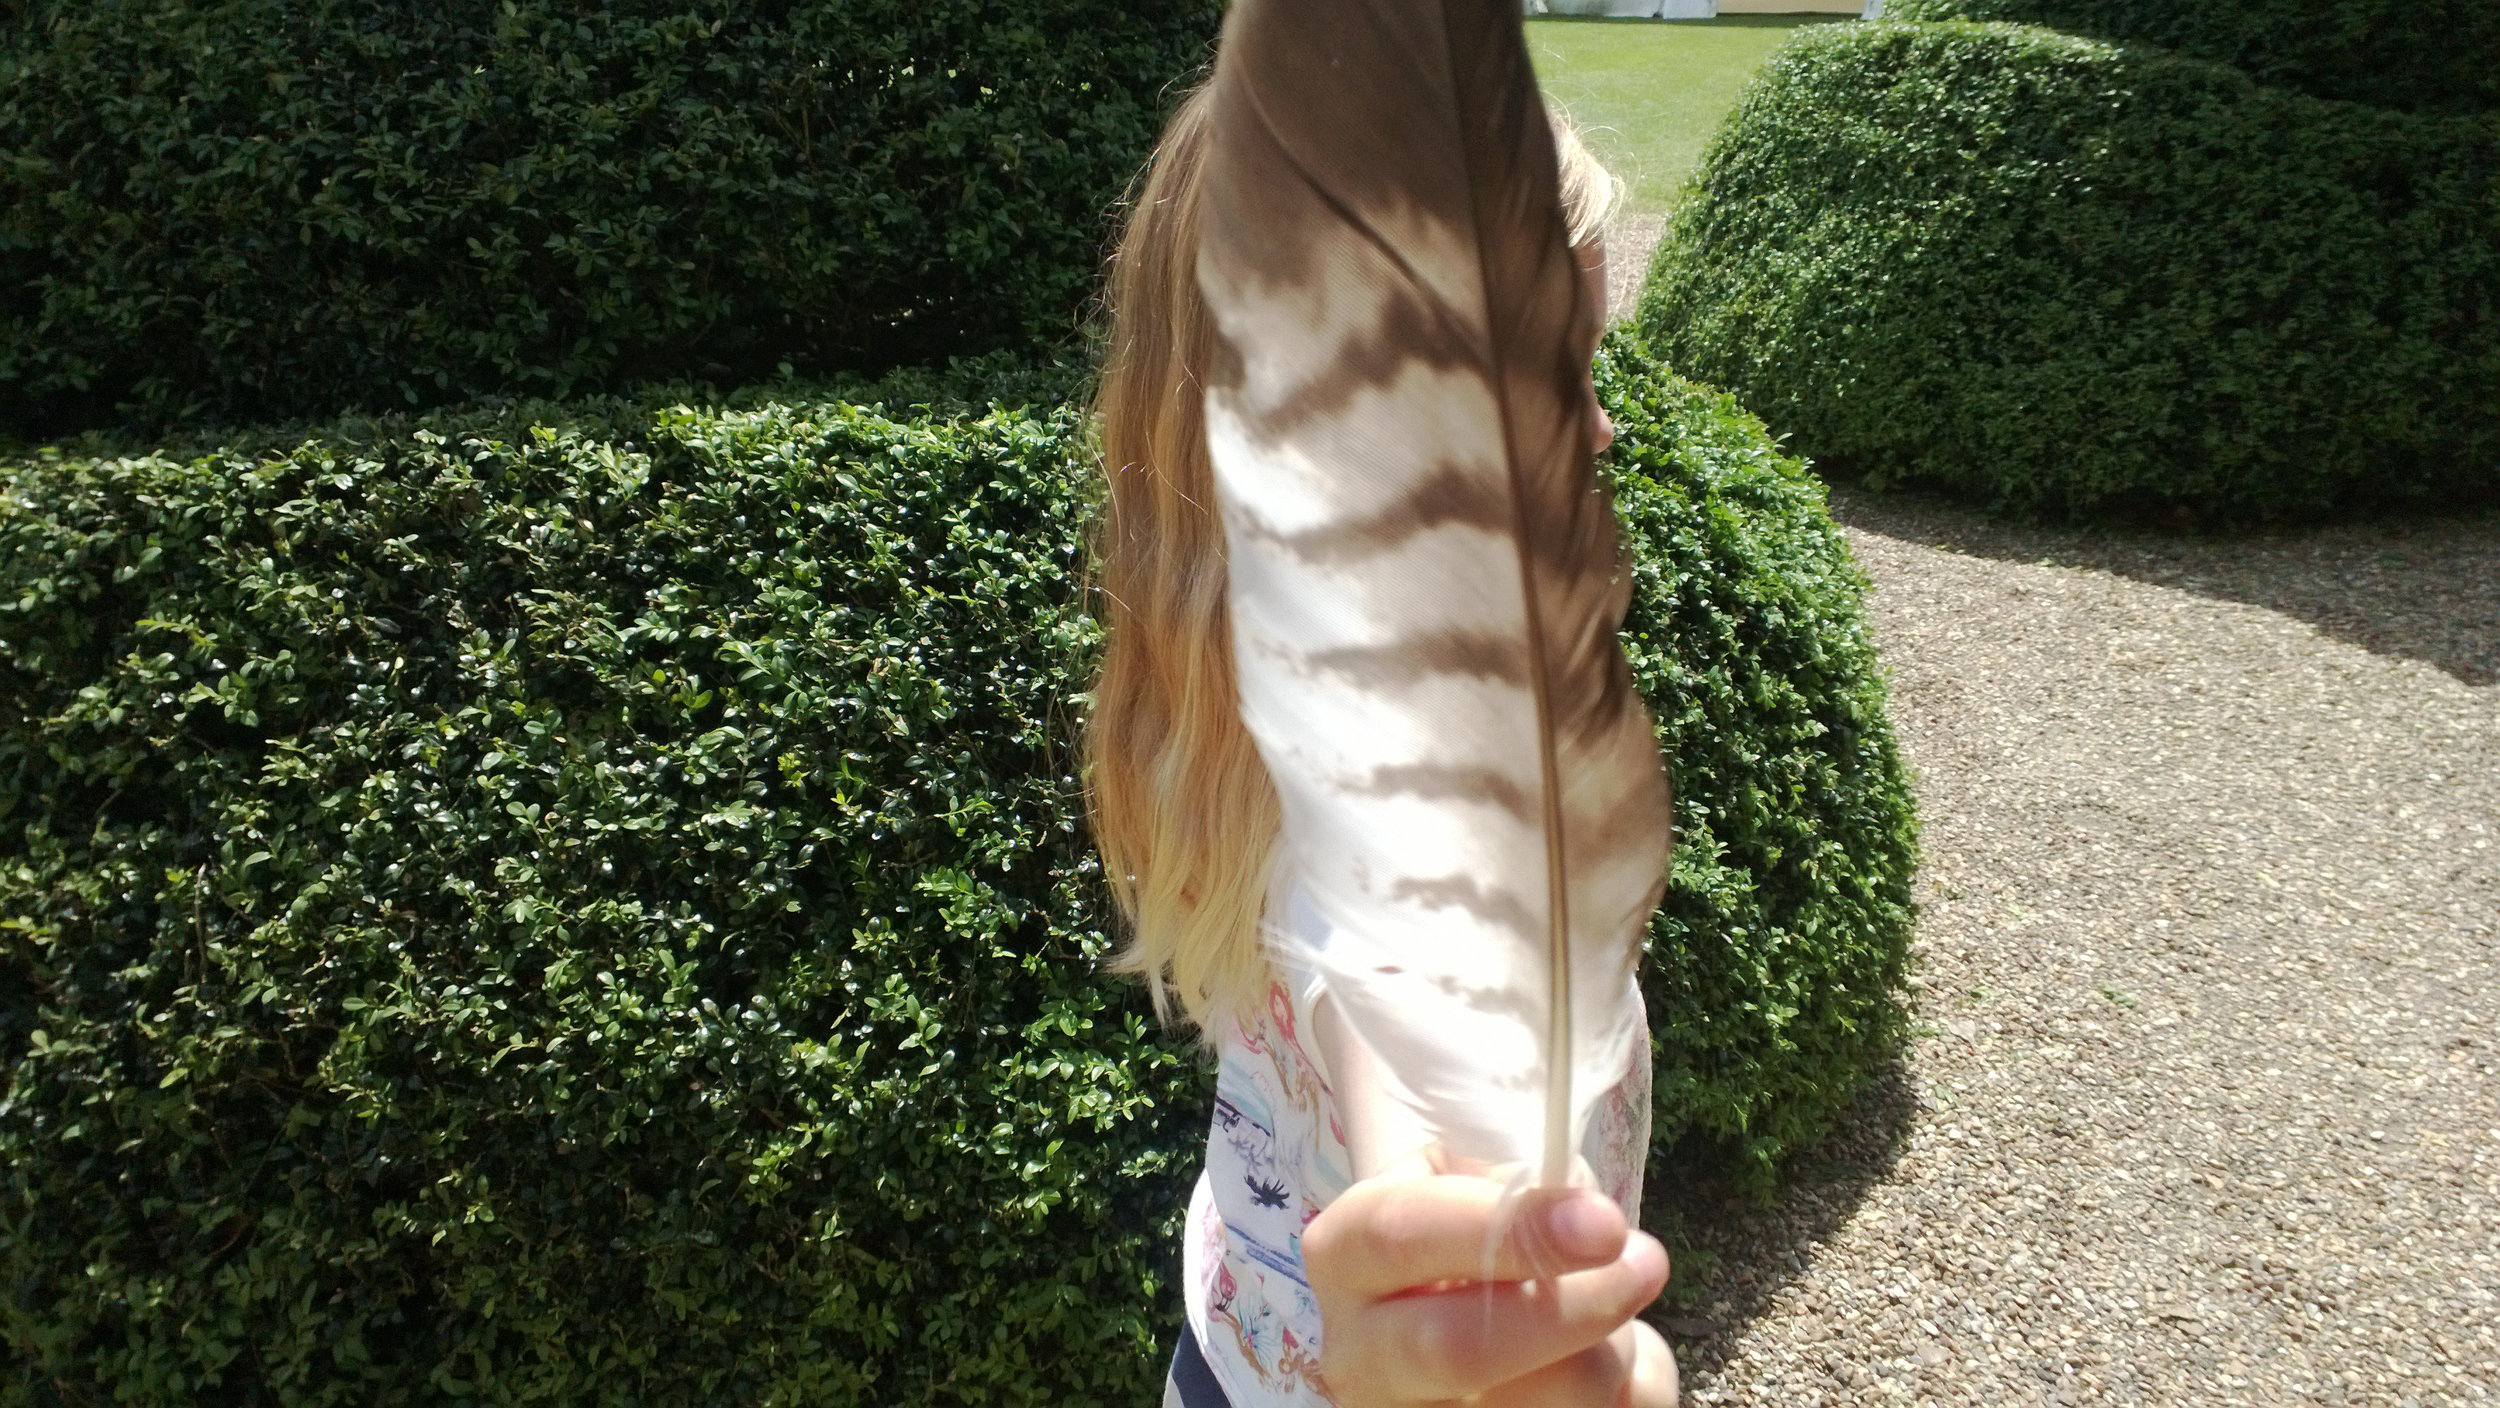 Feather, France © Tanya Clarke 2013